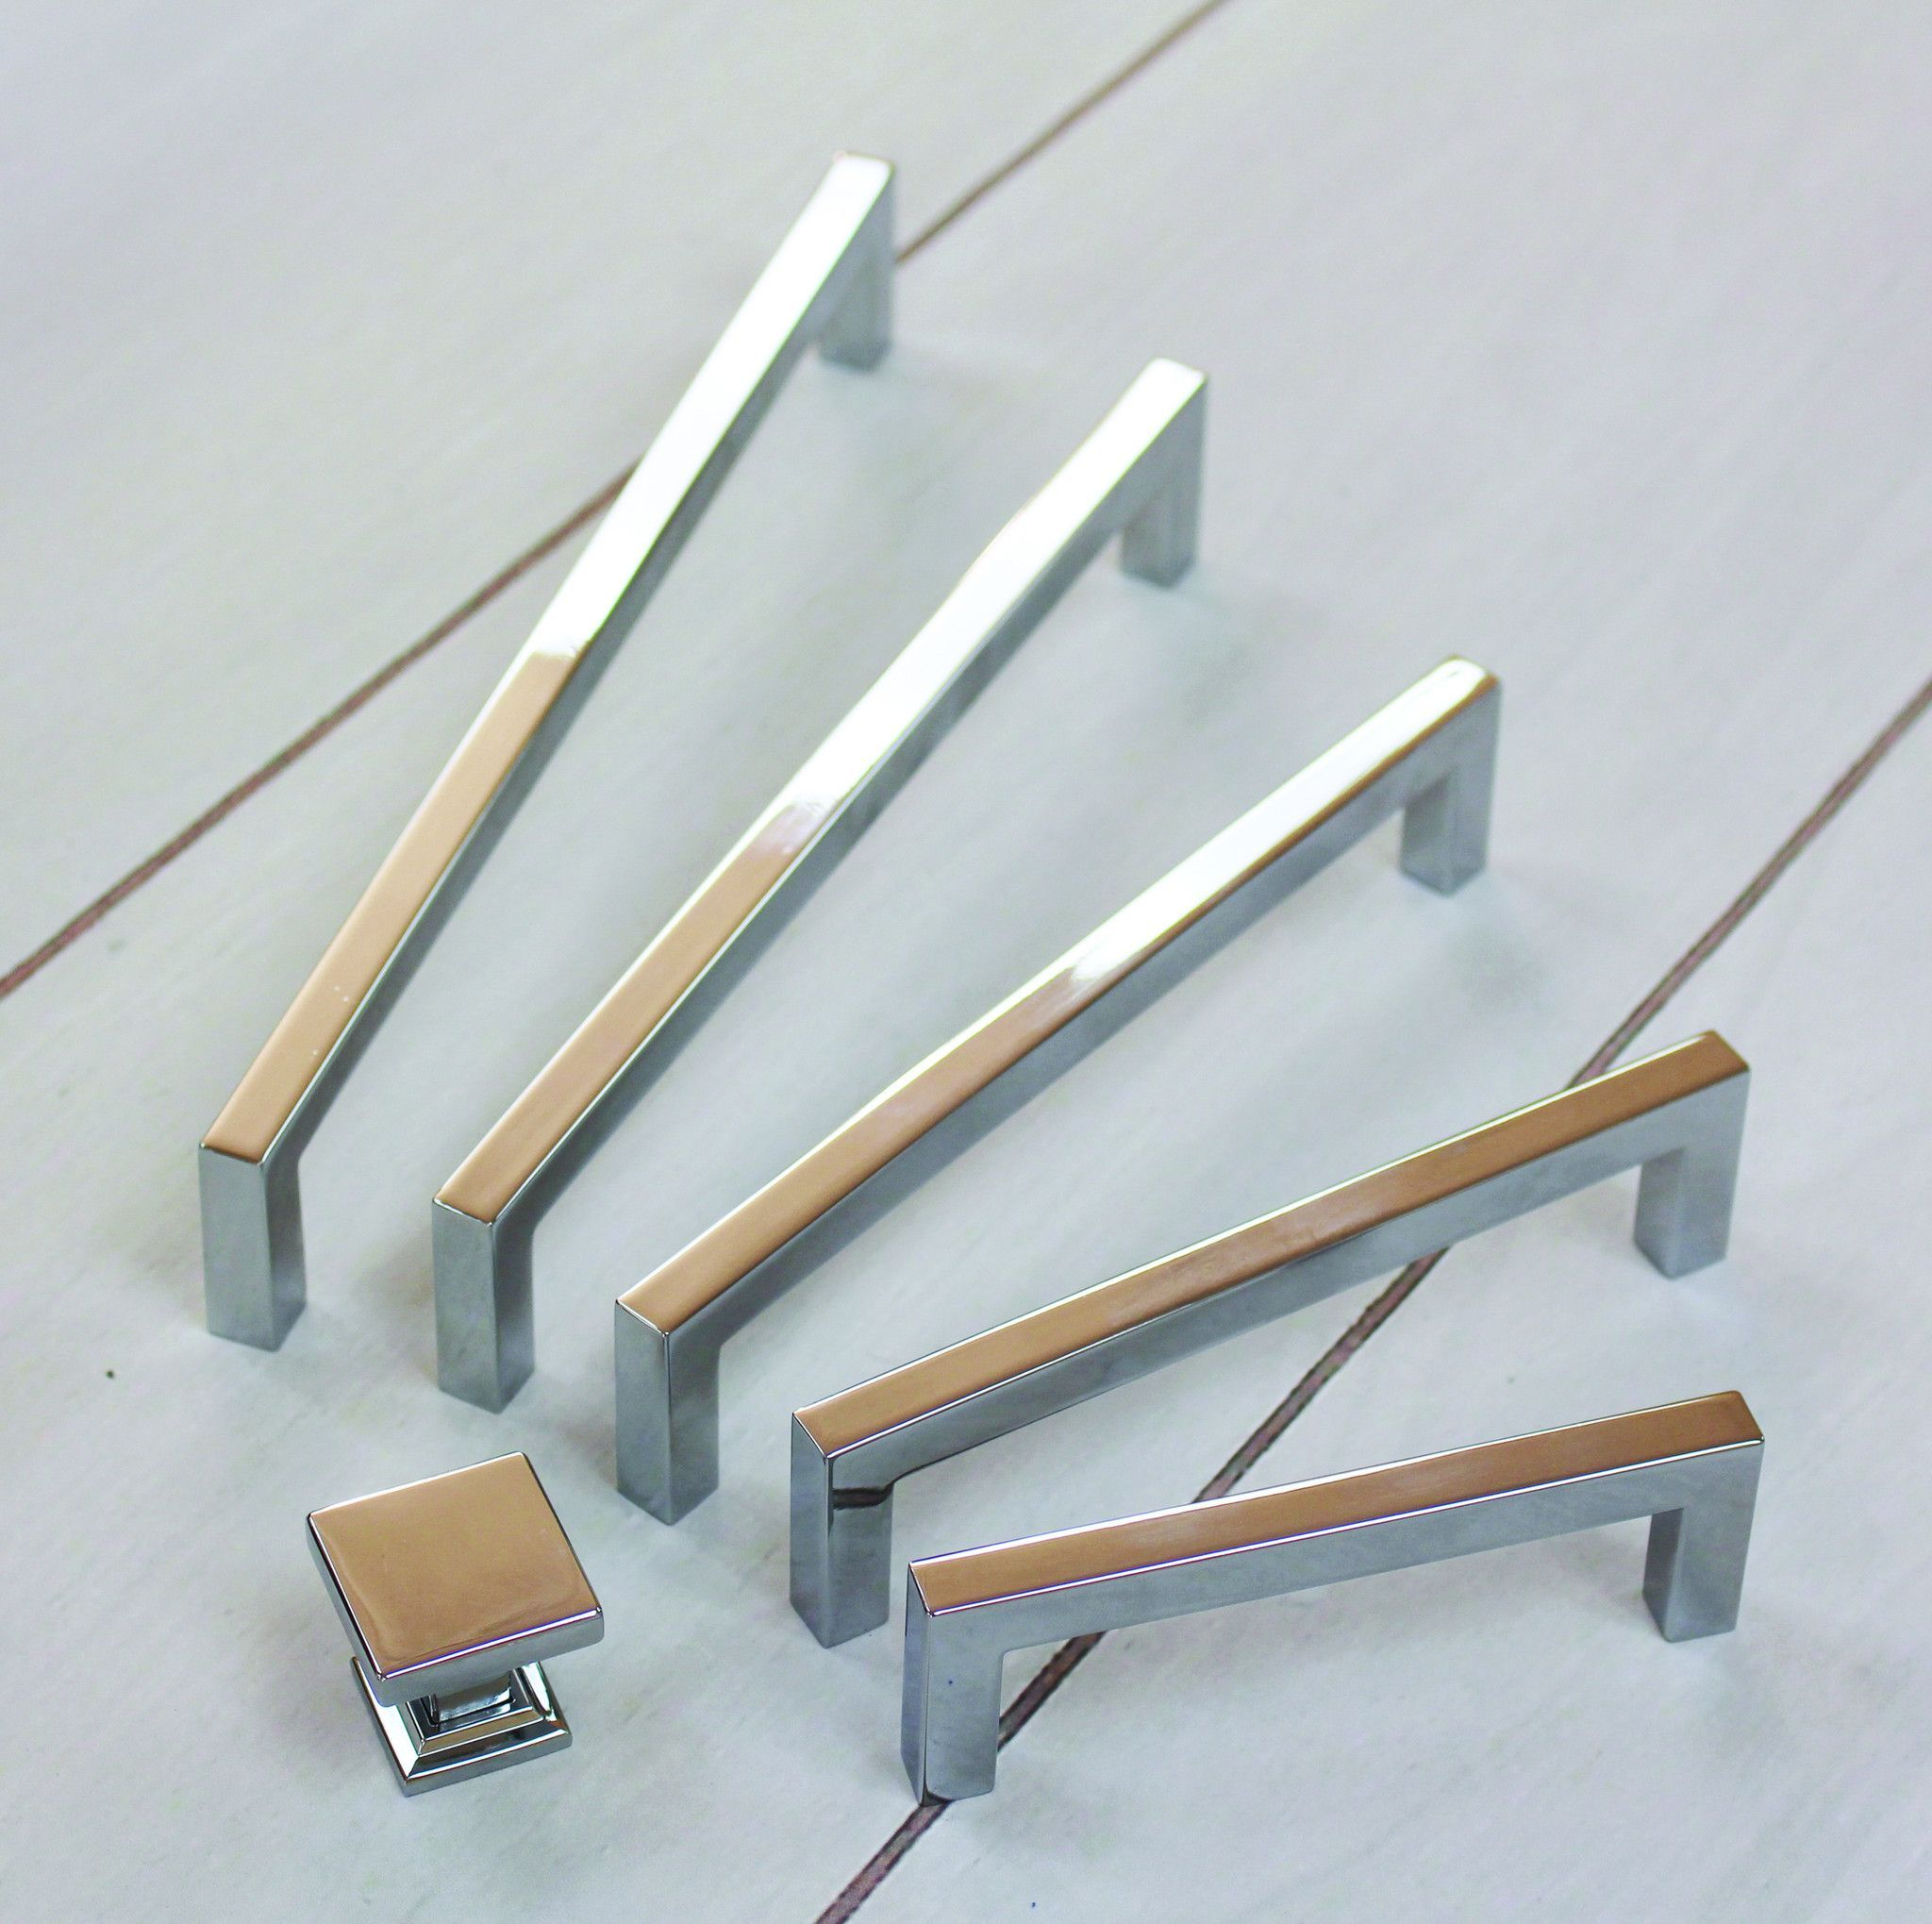 Contemporary Square Cabinet Pull | Linden | Pinterest | Cabinet ...